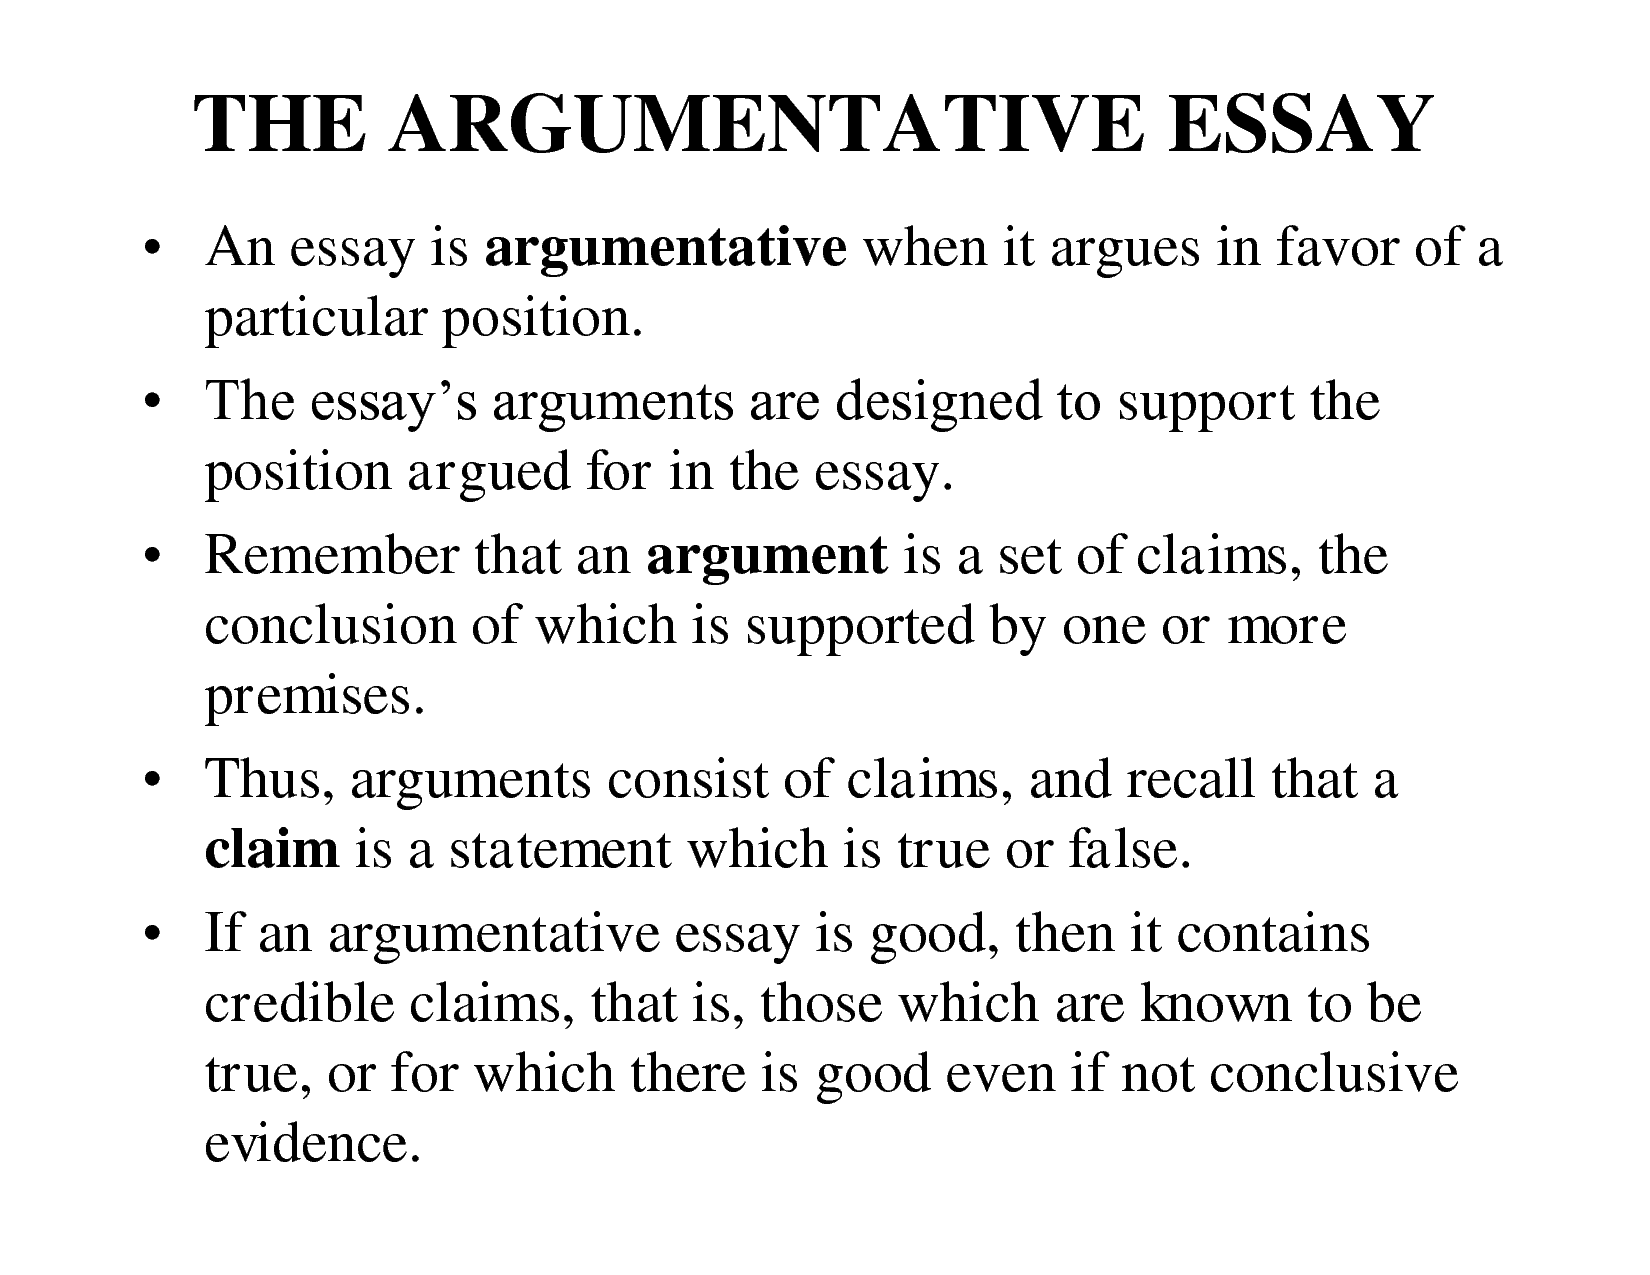 argument essay structure The argument, which states that wptk's broadcast of traffic updates would reduce the incidence of auto accidents on metropolis-area roads, has merit.